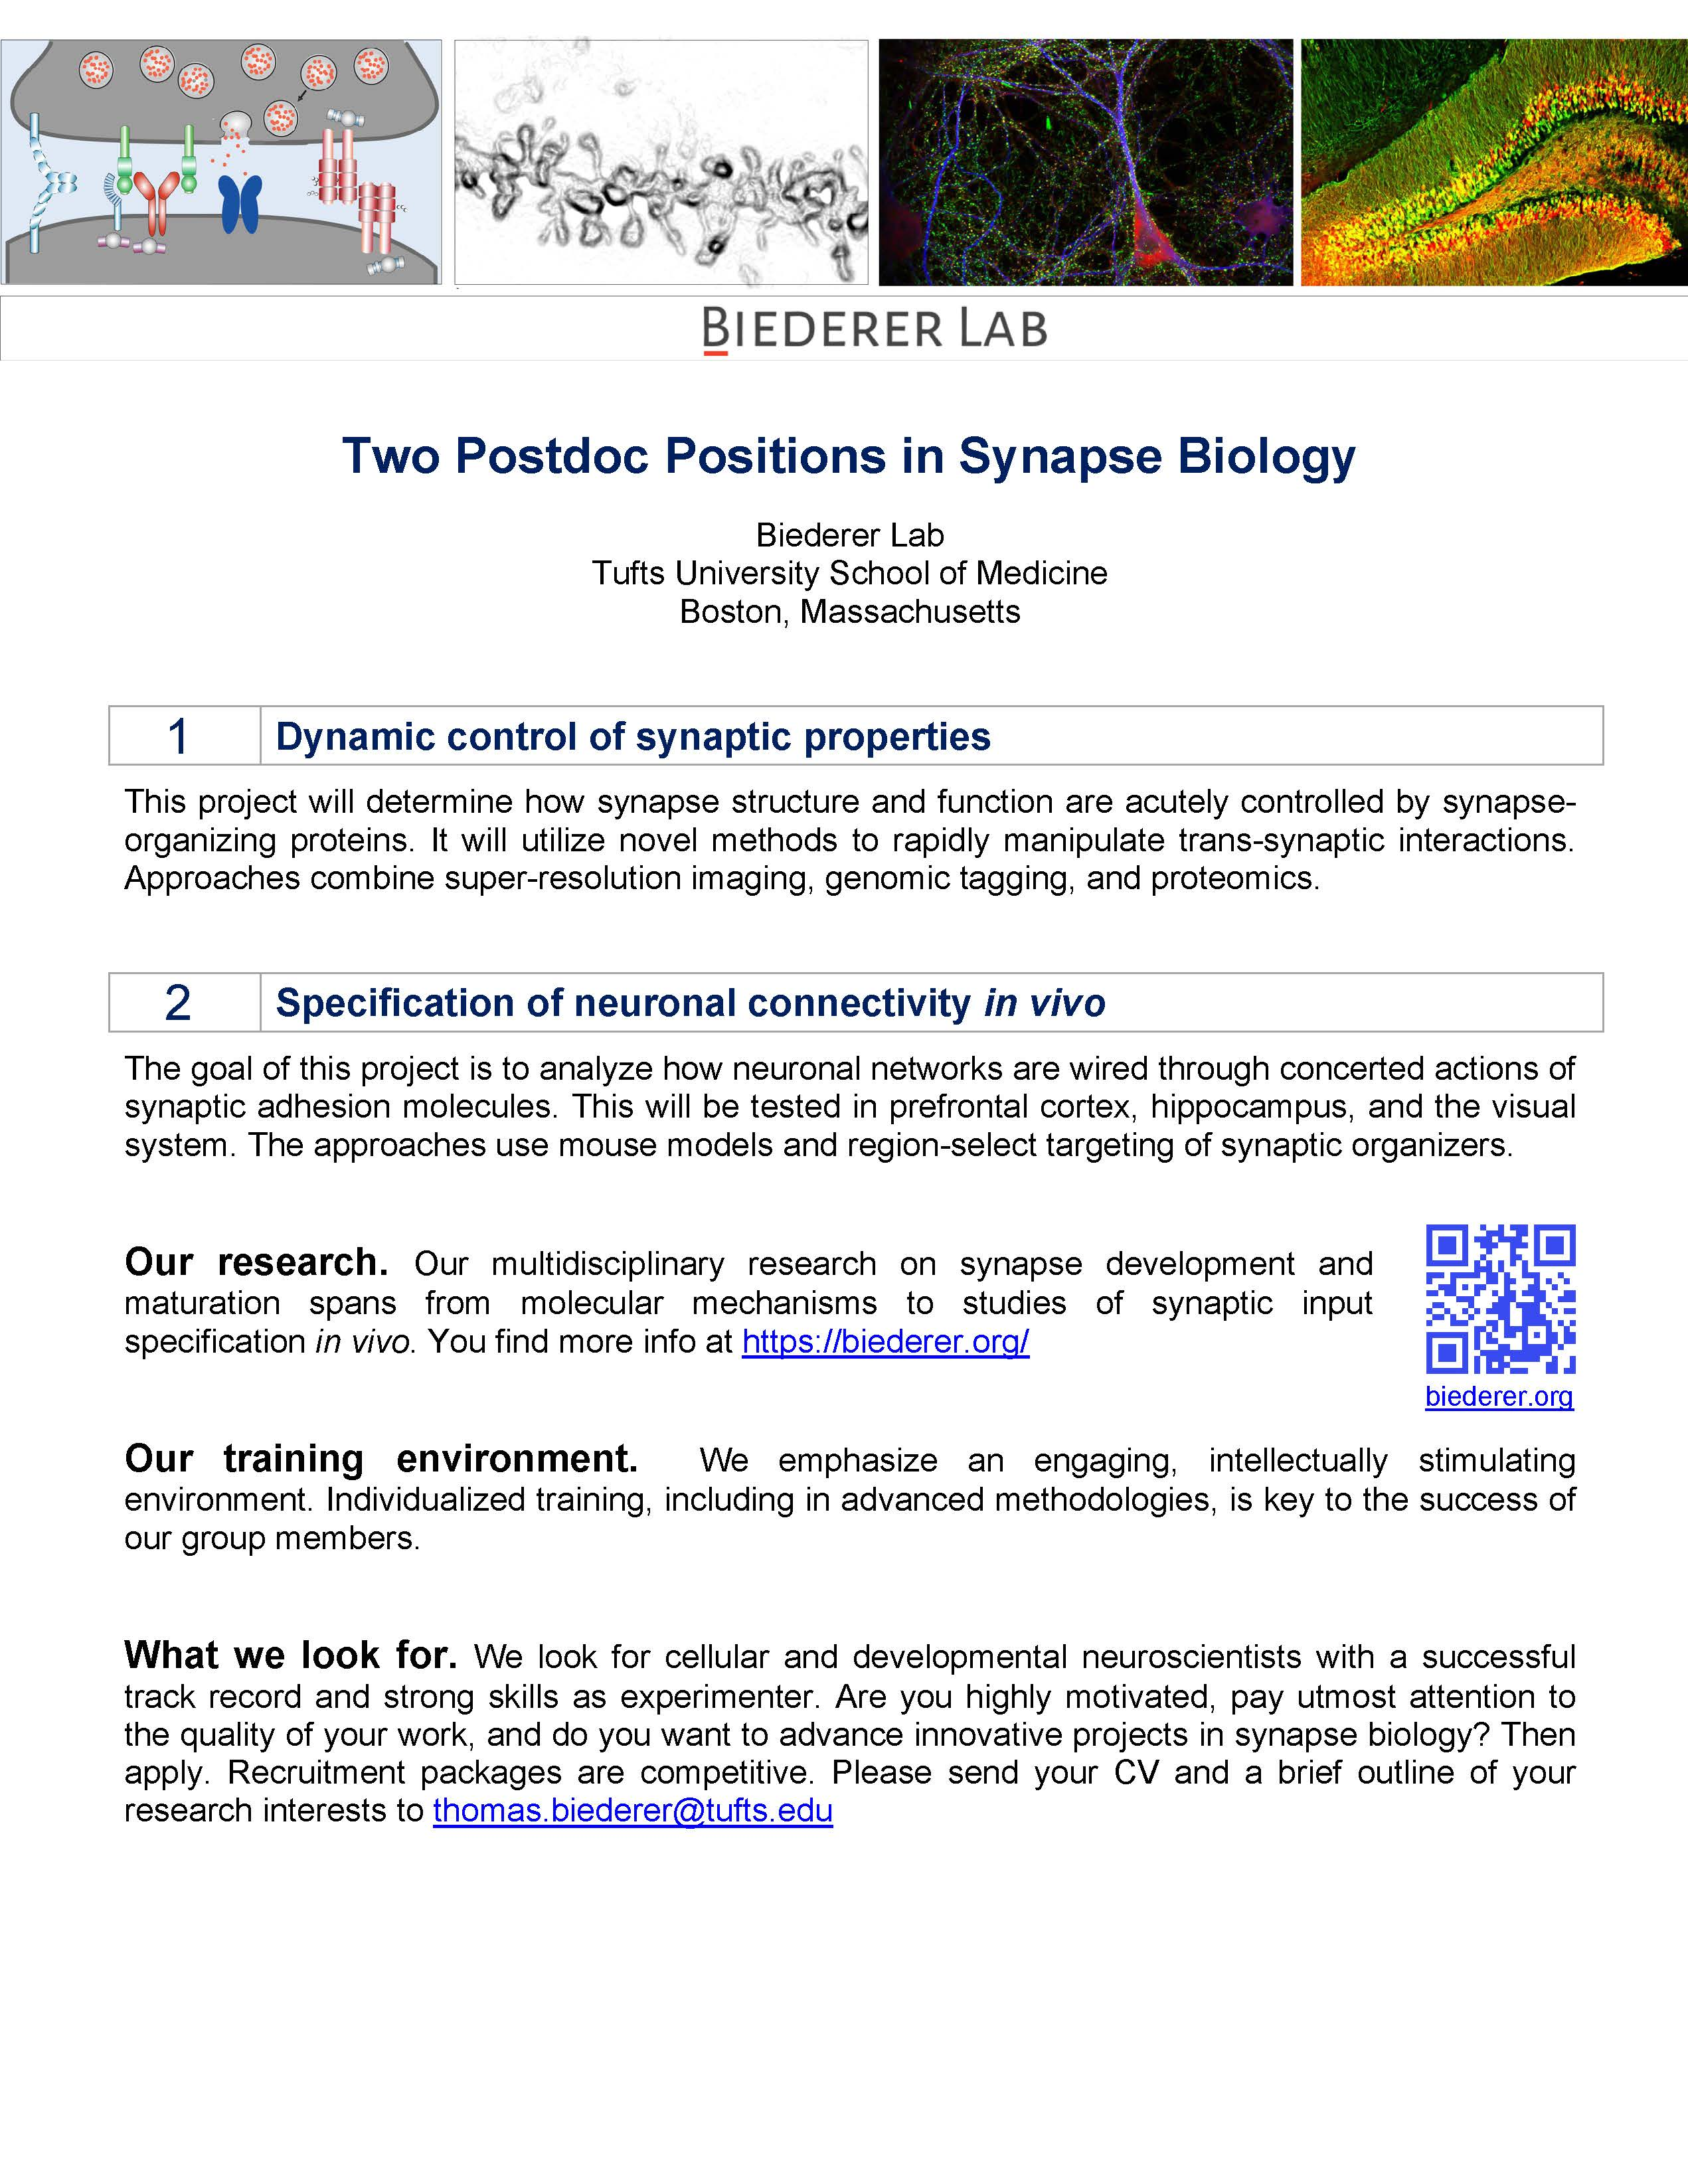 Postdoc Flyer Biederer Lab.jpg